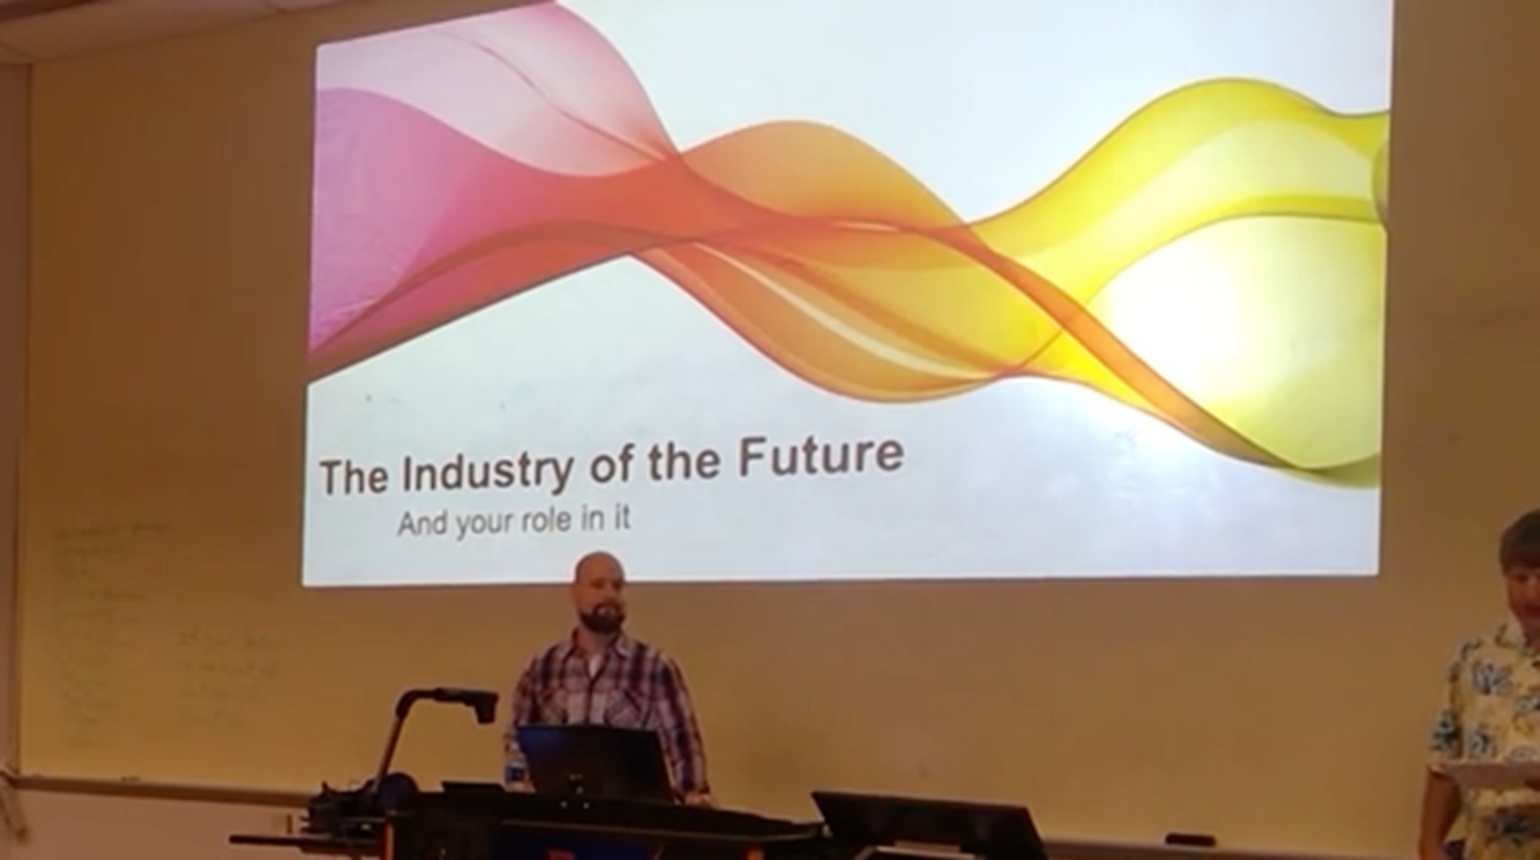 VR - The Industry of the Future and Your Role in it